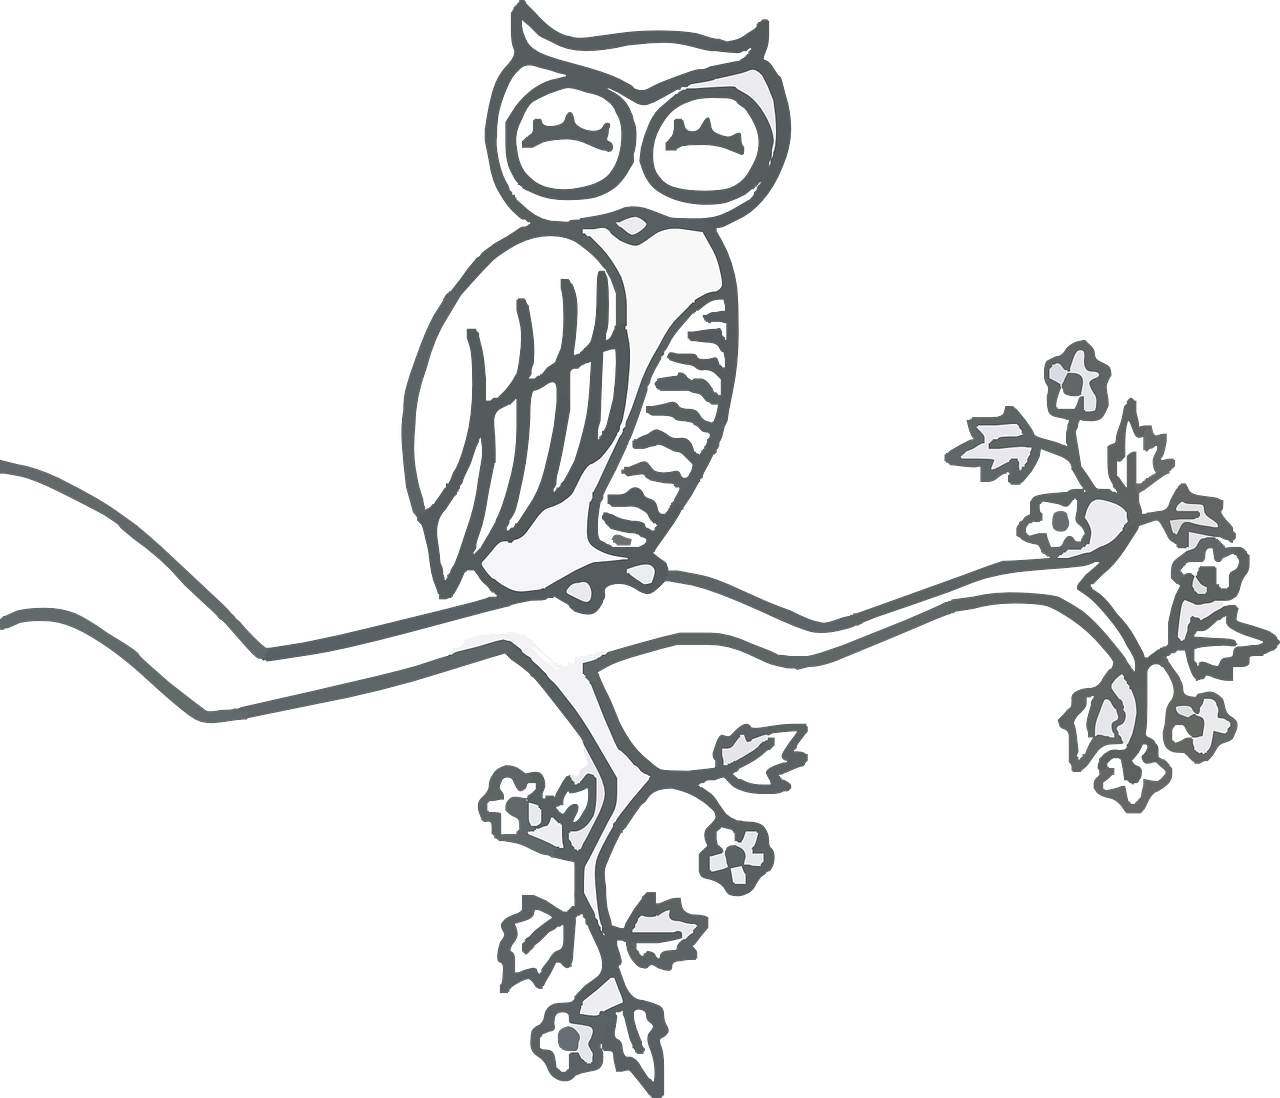 Mindfulness drawing owl. Perched sleep spring transparent